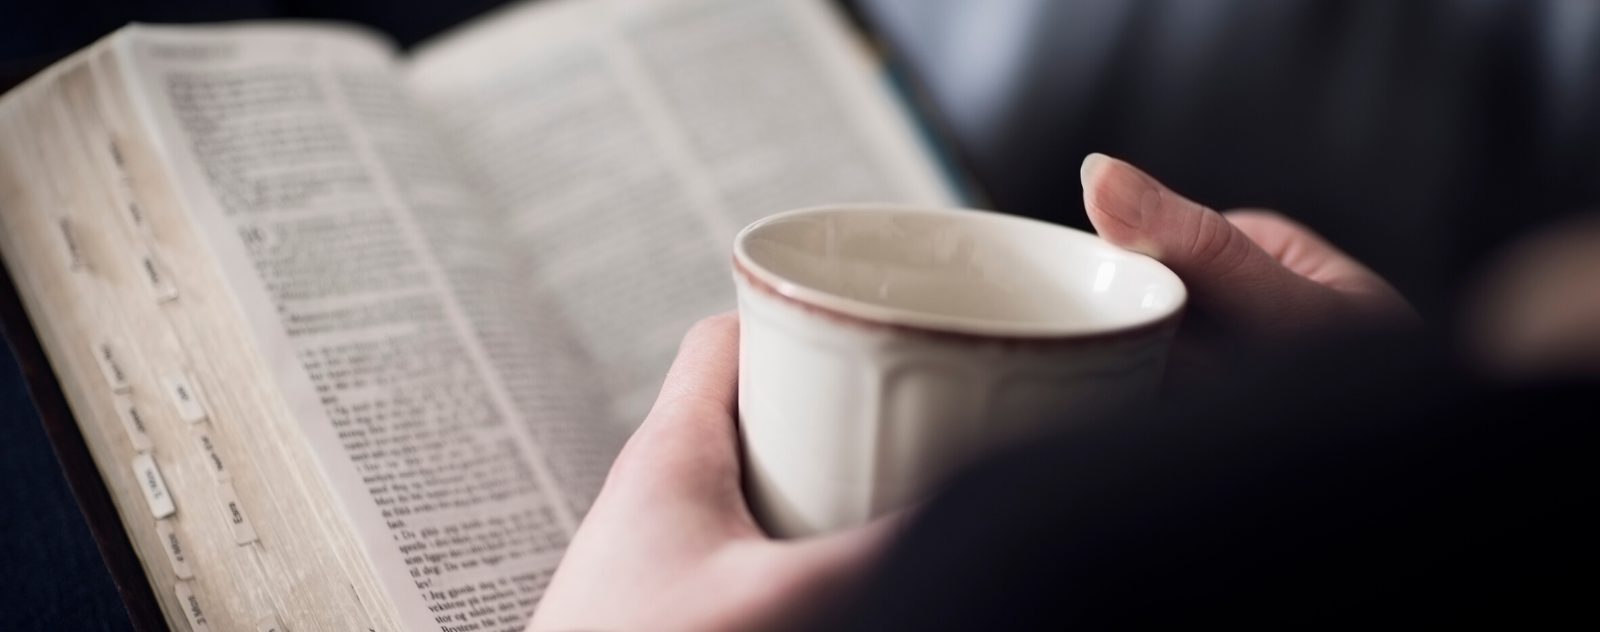 The Gospel of matthew for a Bible Study